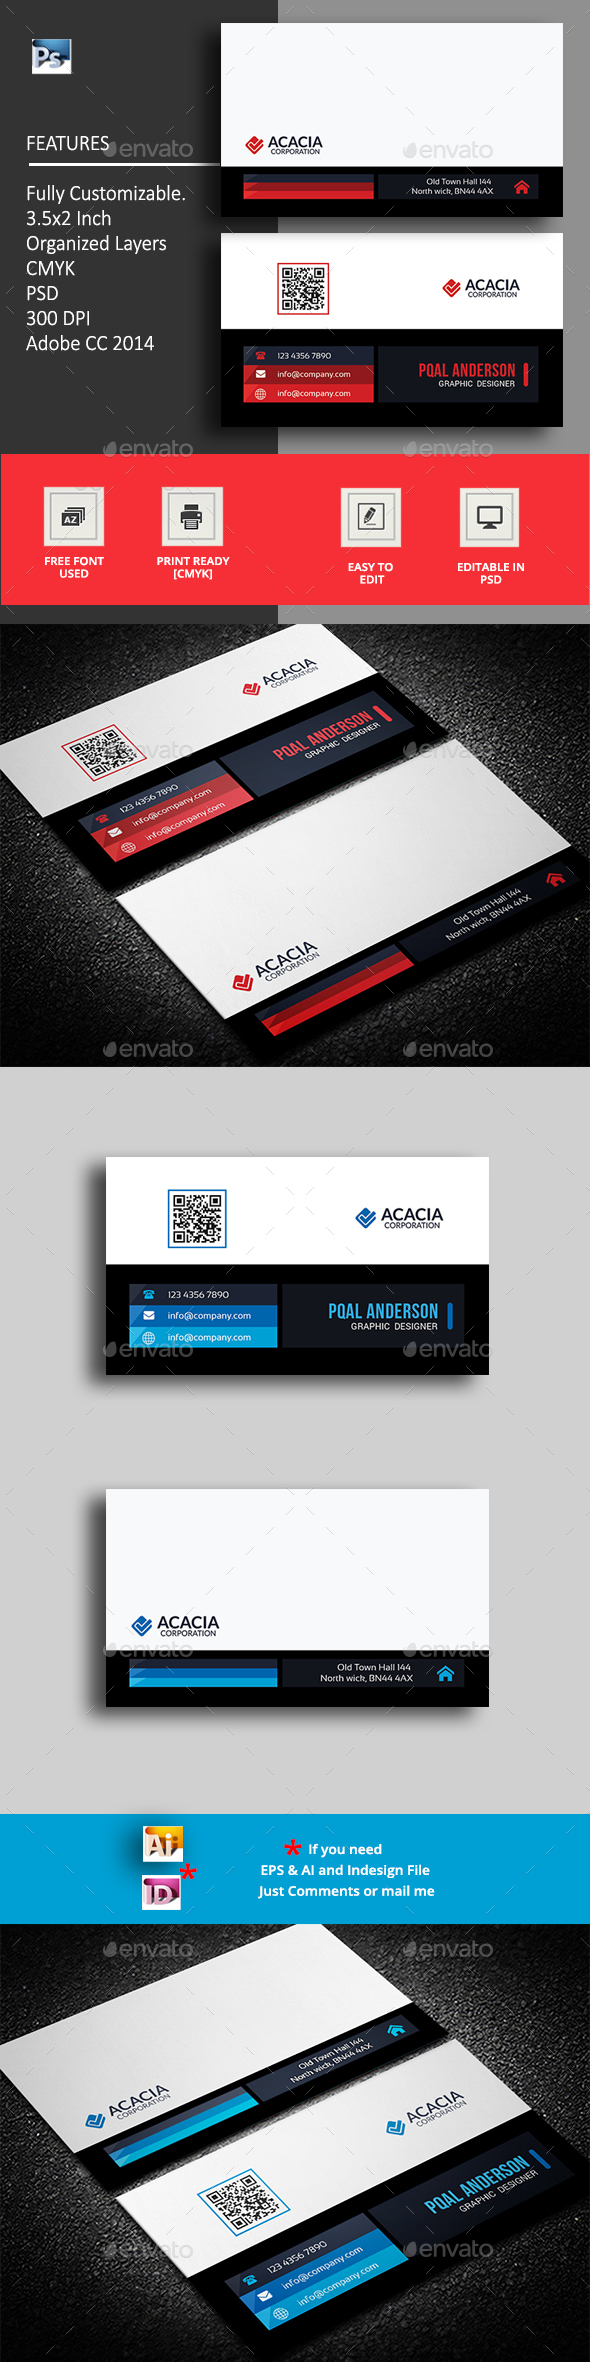 Kordi Business Card - Corporate Business Cards